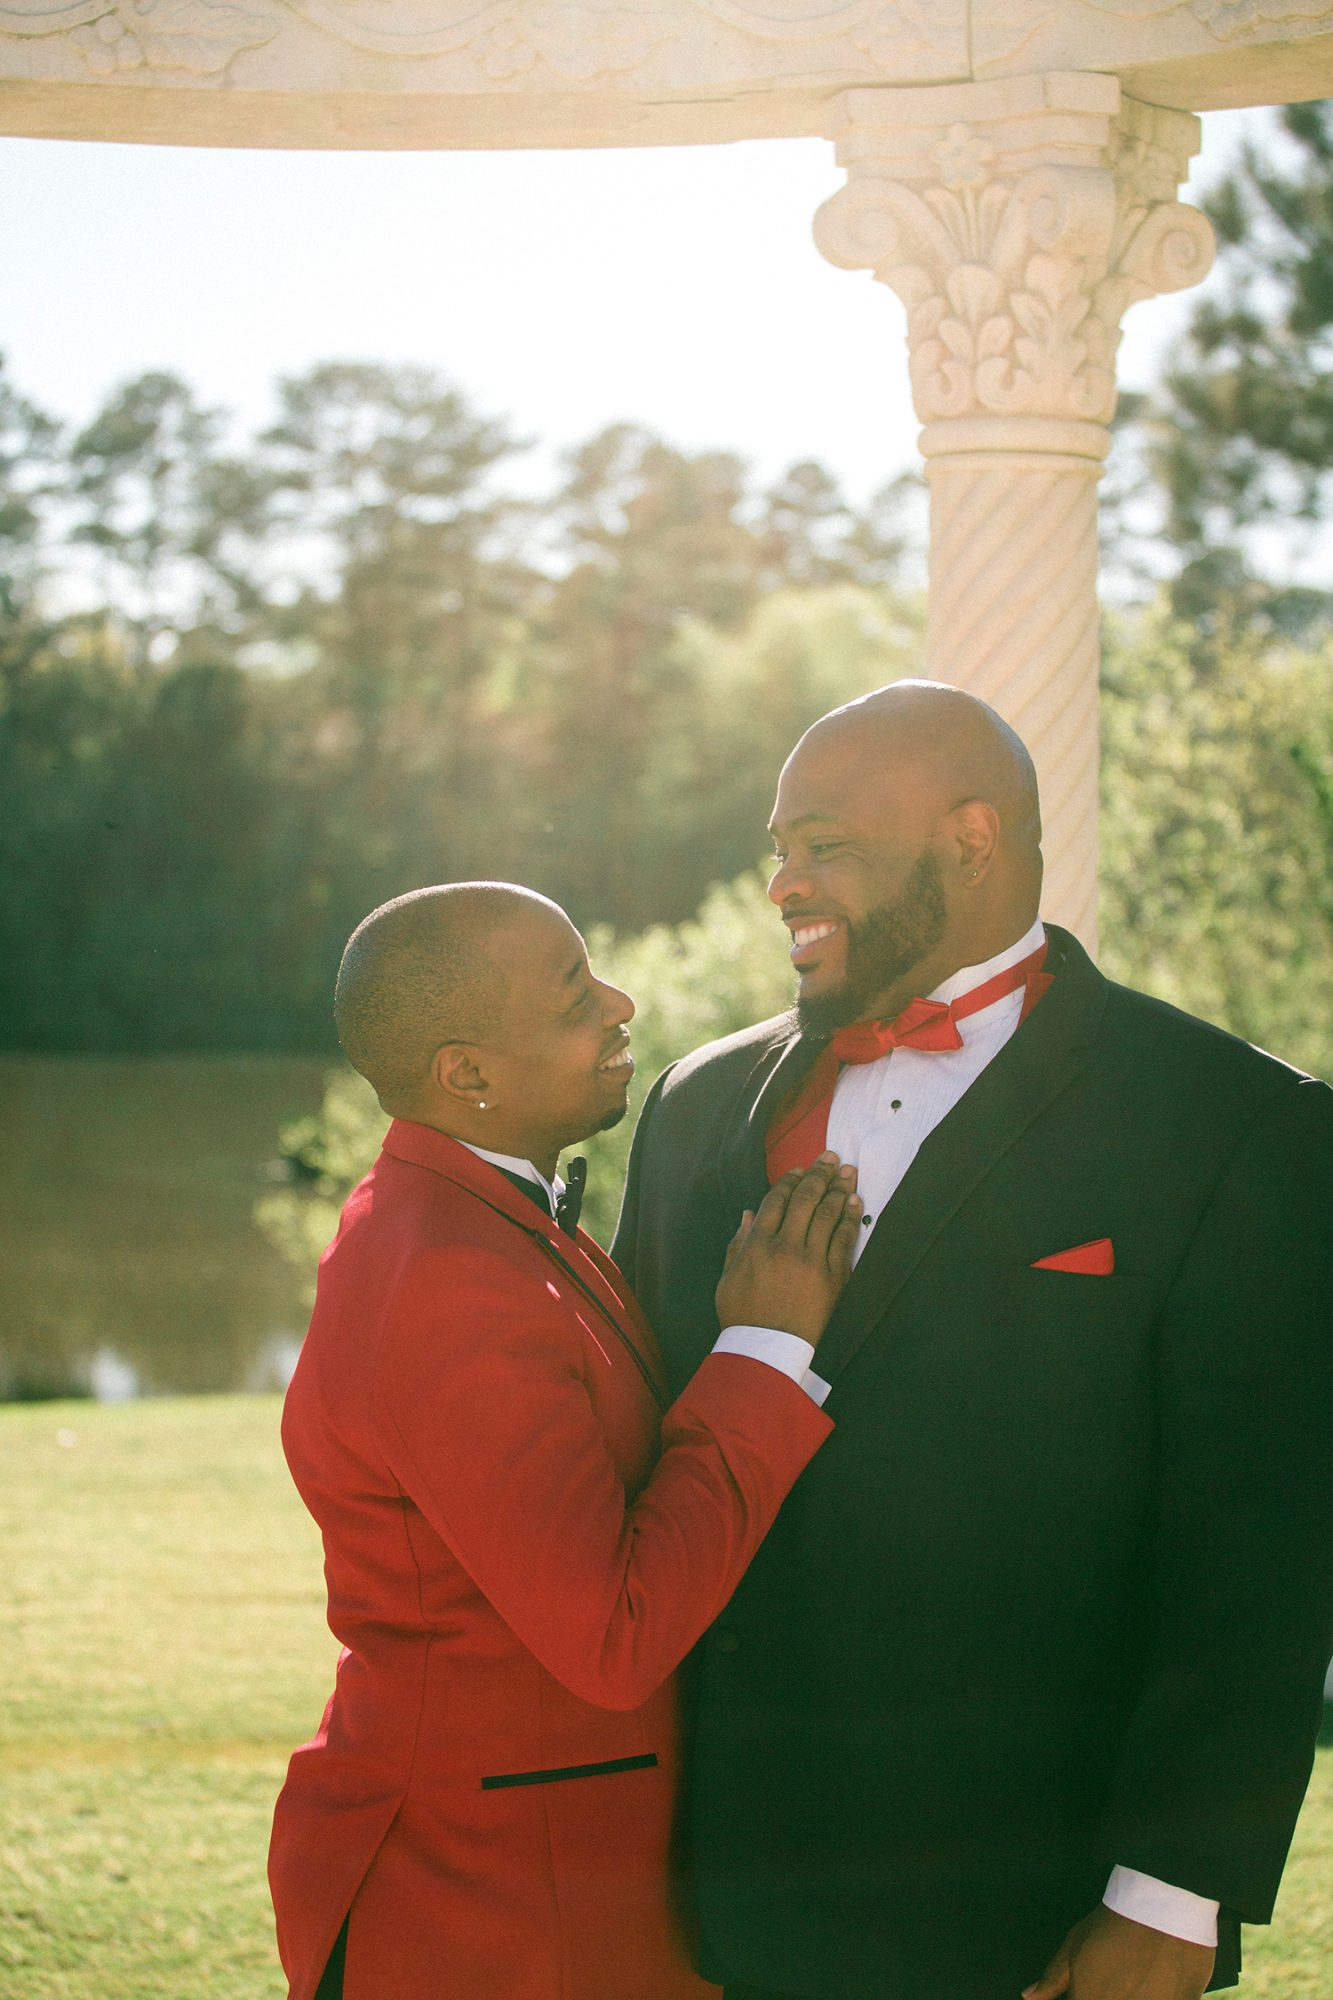 The expressions of these grooms said it all as they were photographed on their wedding day.